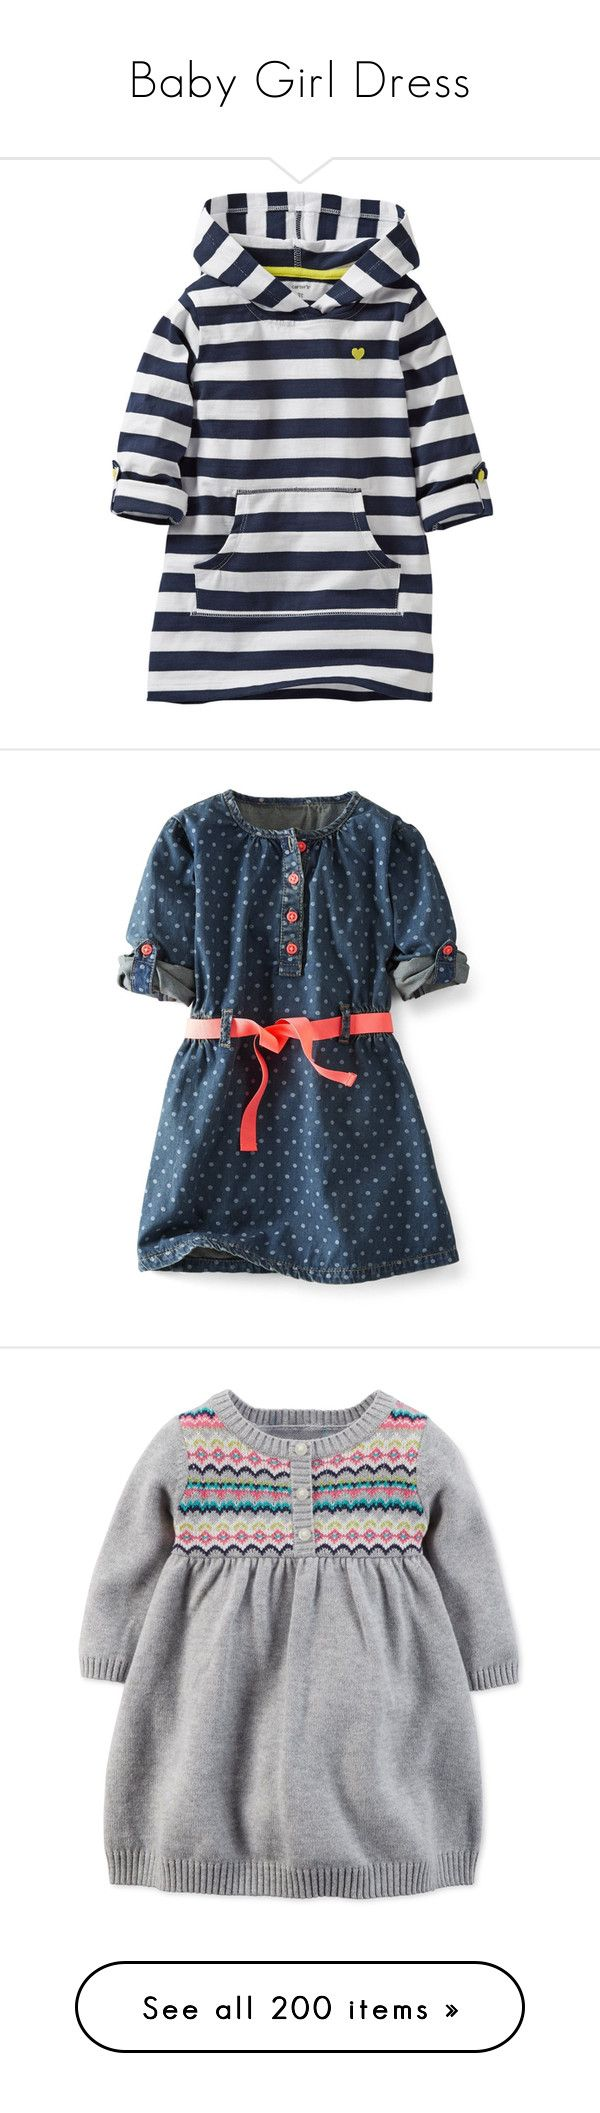 """Baby Girl Dress"" by alejaborrayo ❤ liked on Polyvore featuring girls, kids, baby girl, girls dresses, baby, dresses, pink short sleeve dress, pink jersey dress, short sleeve dress and organic cotton dresses"